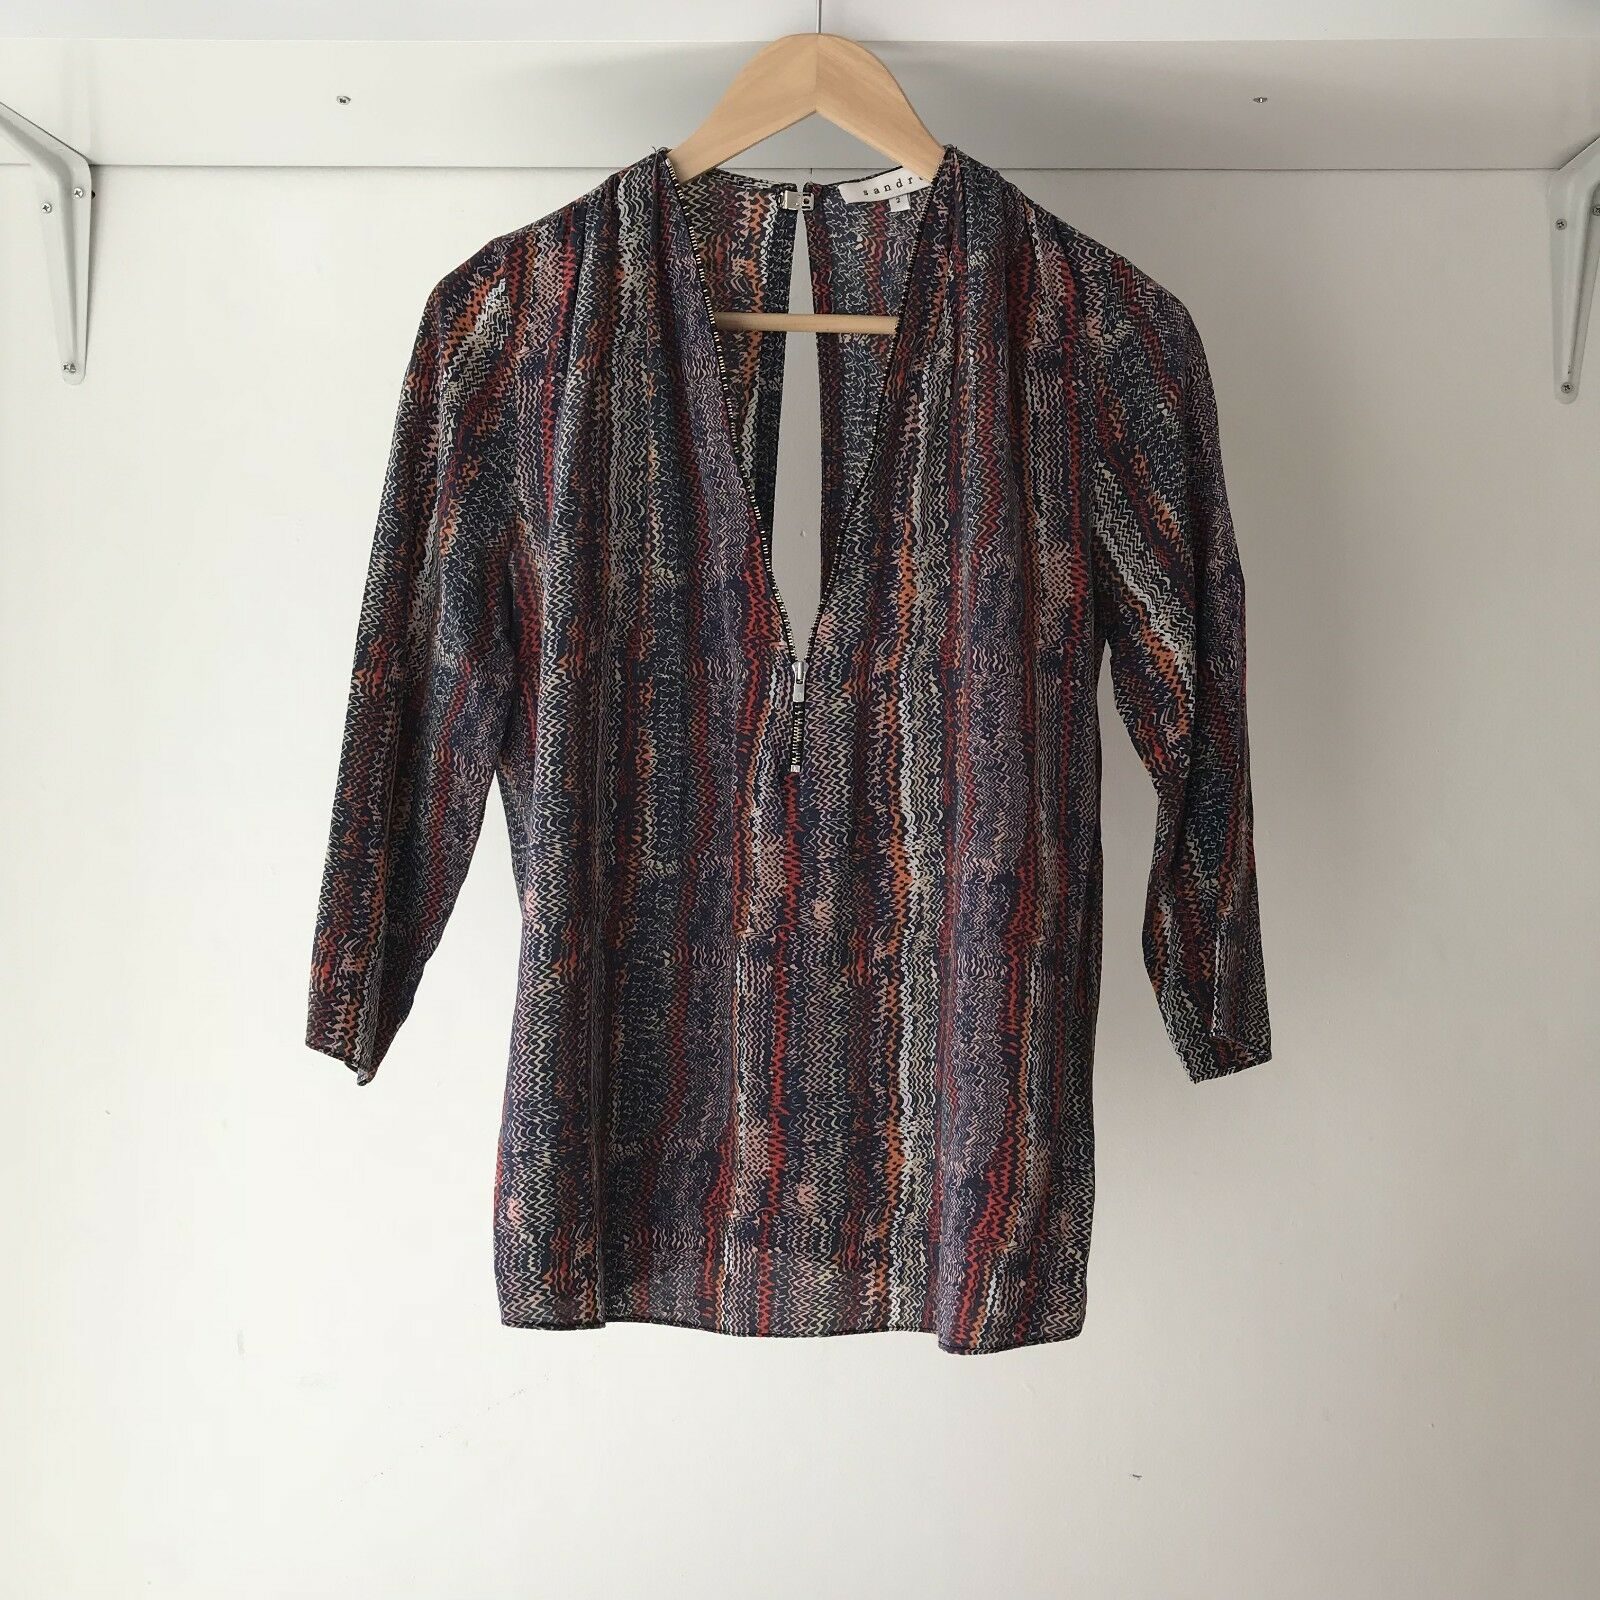 Sandro France Womens 100% Silk Multicolord Long Sleeve Zip front Top, AU Size 6